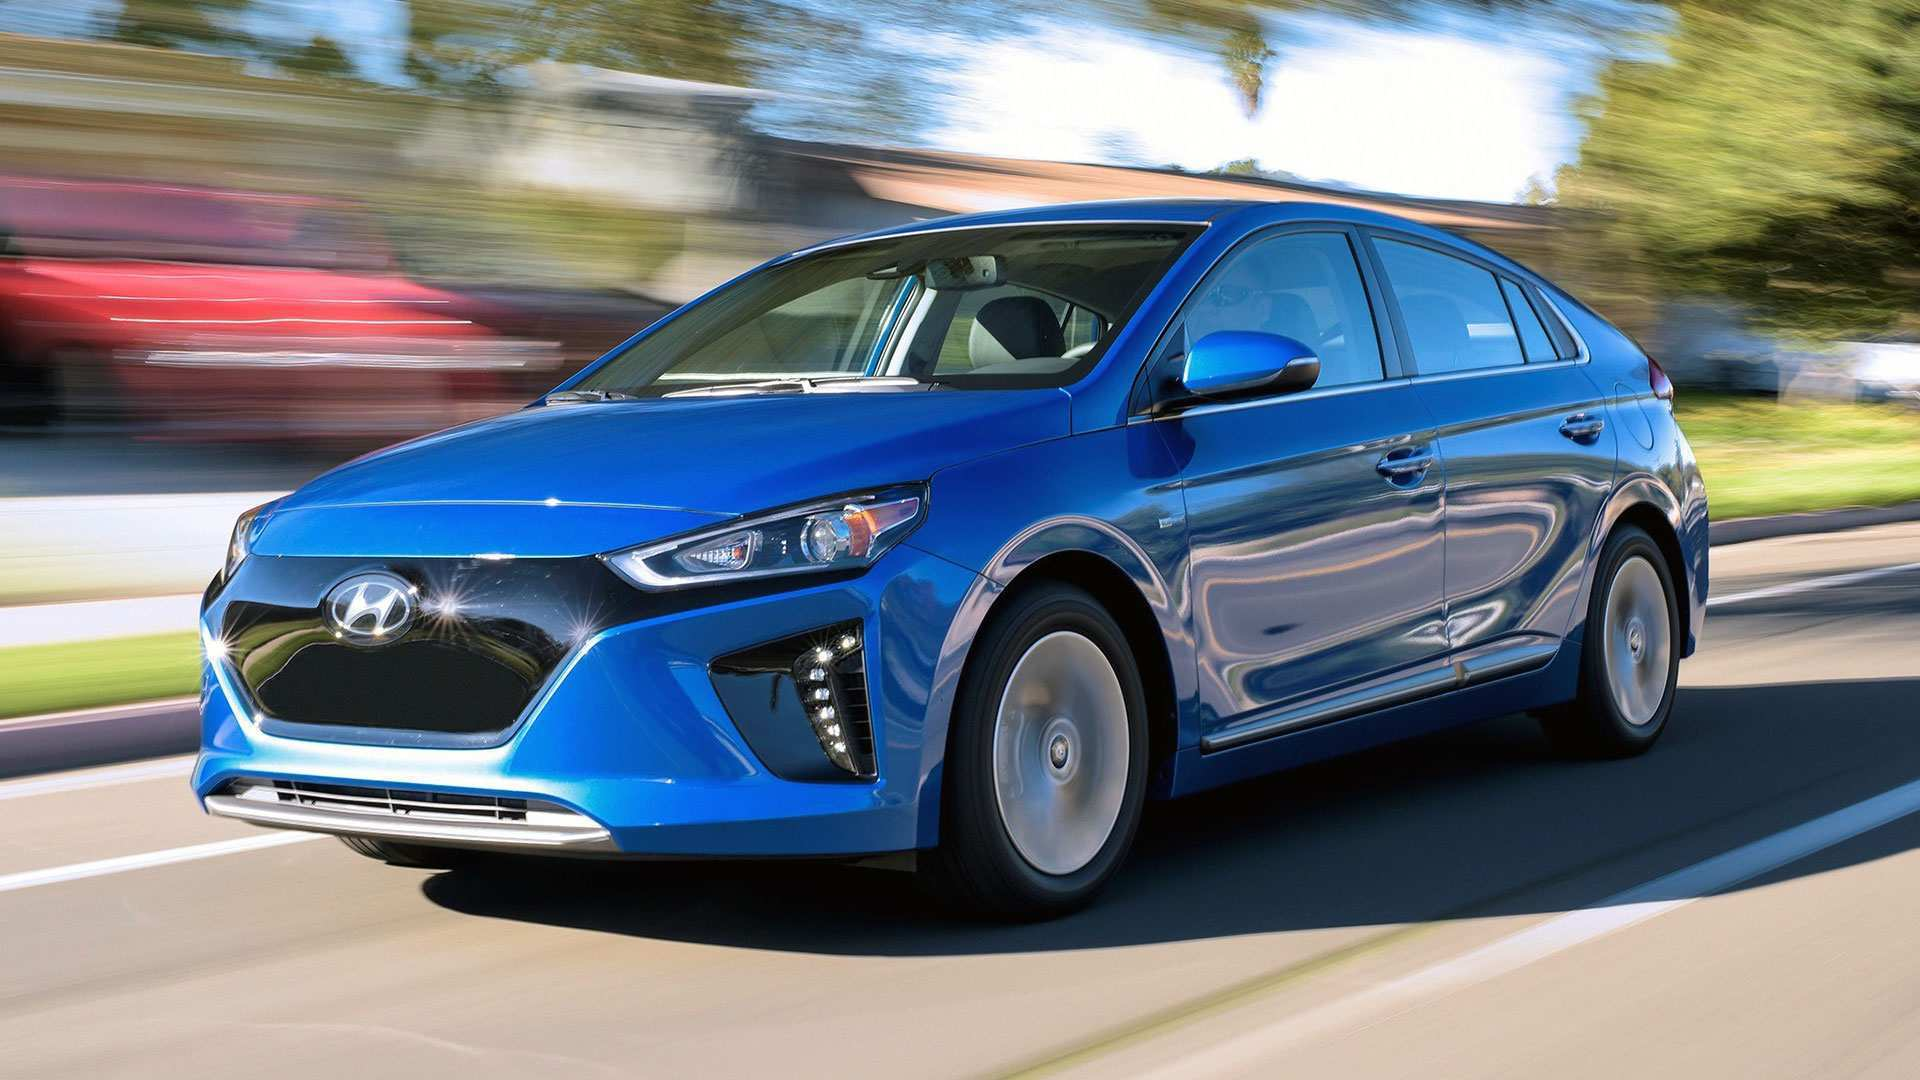 53 Best Review 2020 Hyundai Ioniq Exterior by 2020 Hyundai Ioniq